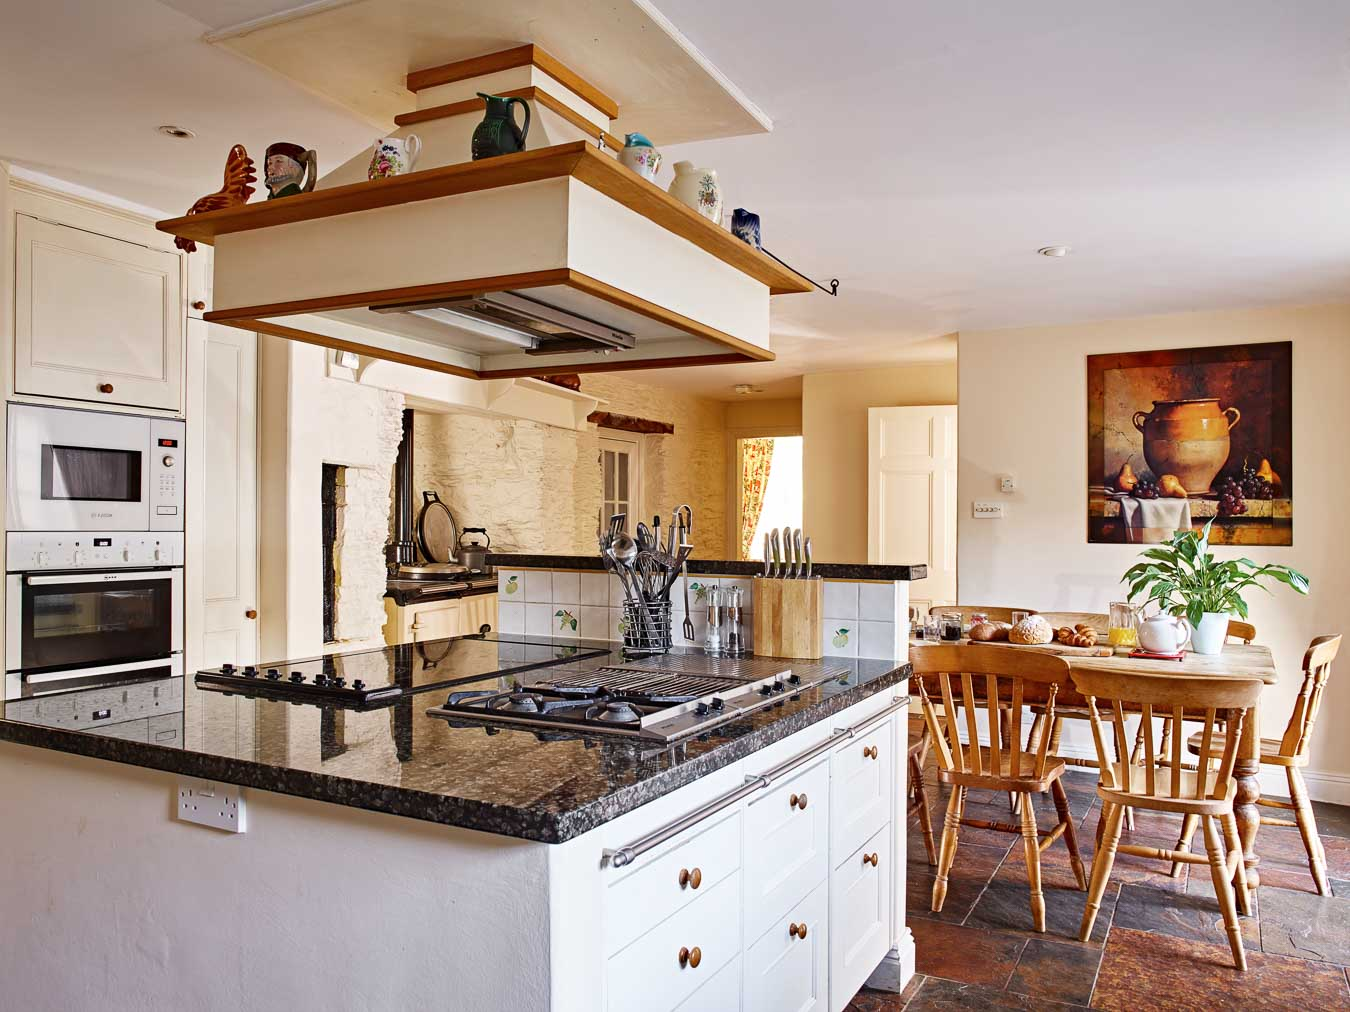 Flear House kitchen with is oven stack, electric hobs and gas burner.